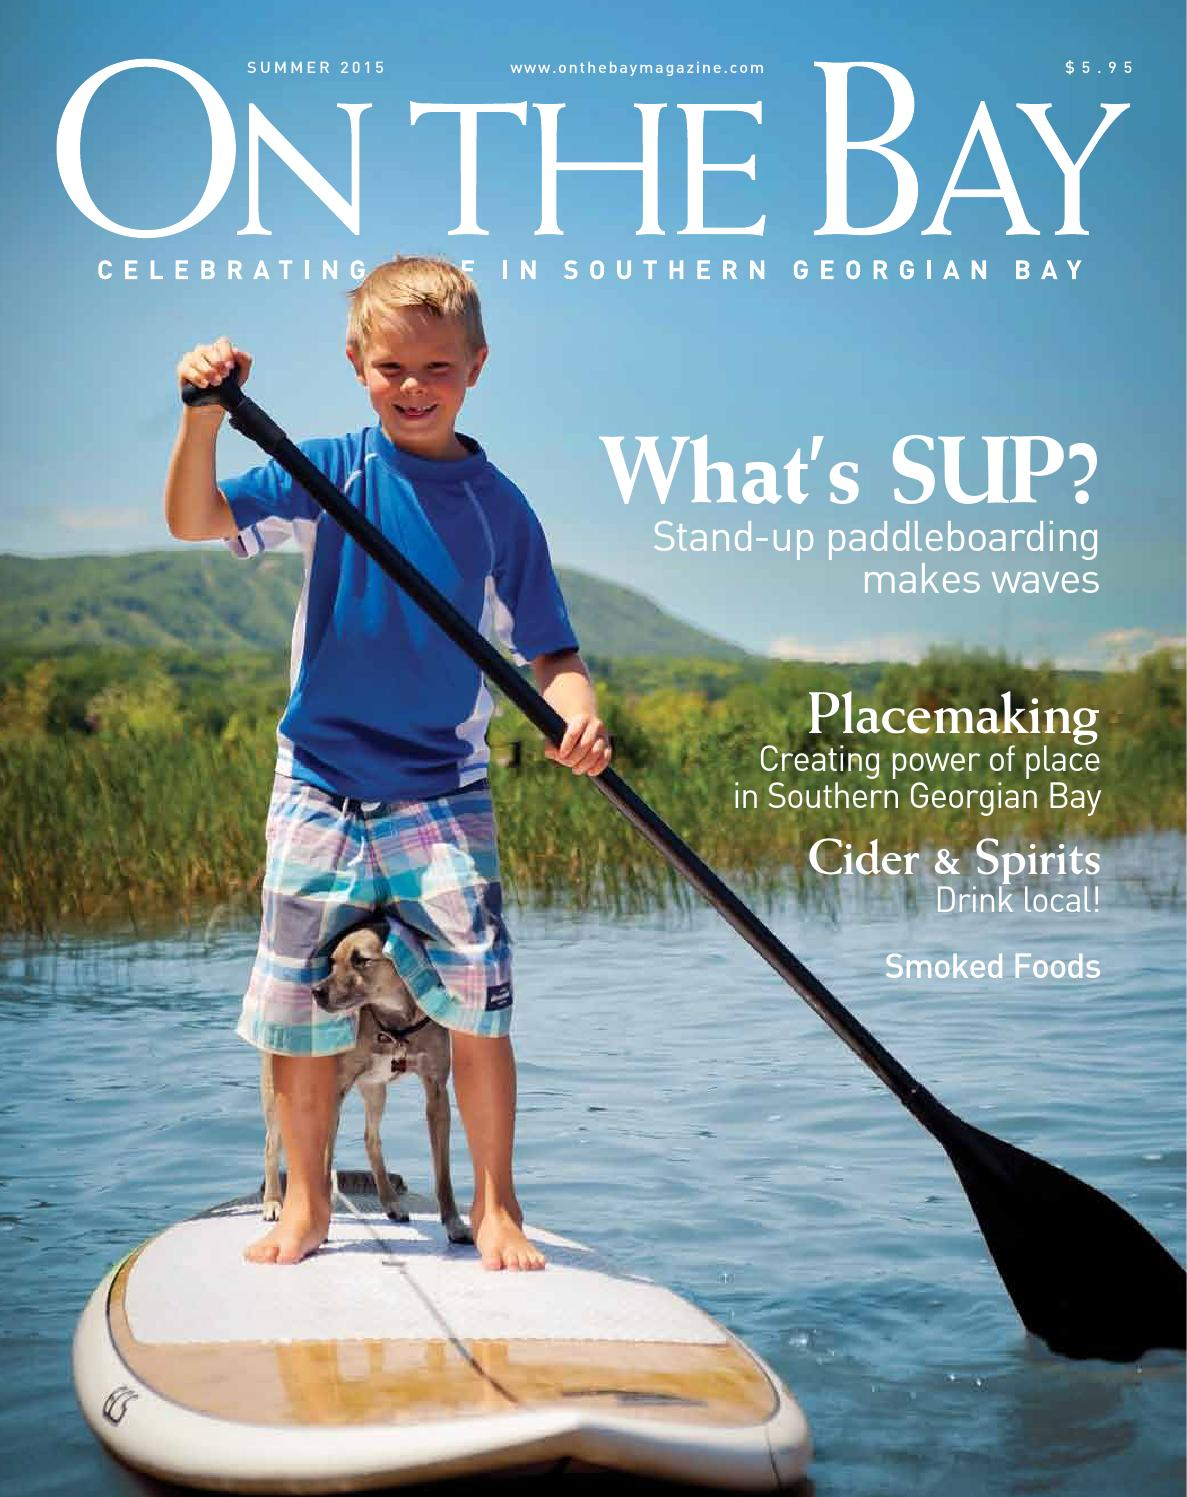 On The Bay Summer 2015 by On The Bay Magazine - issuu